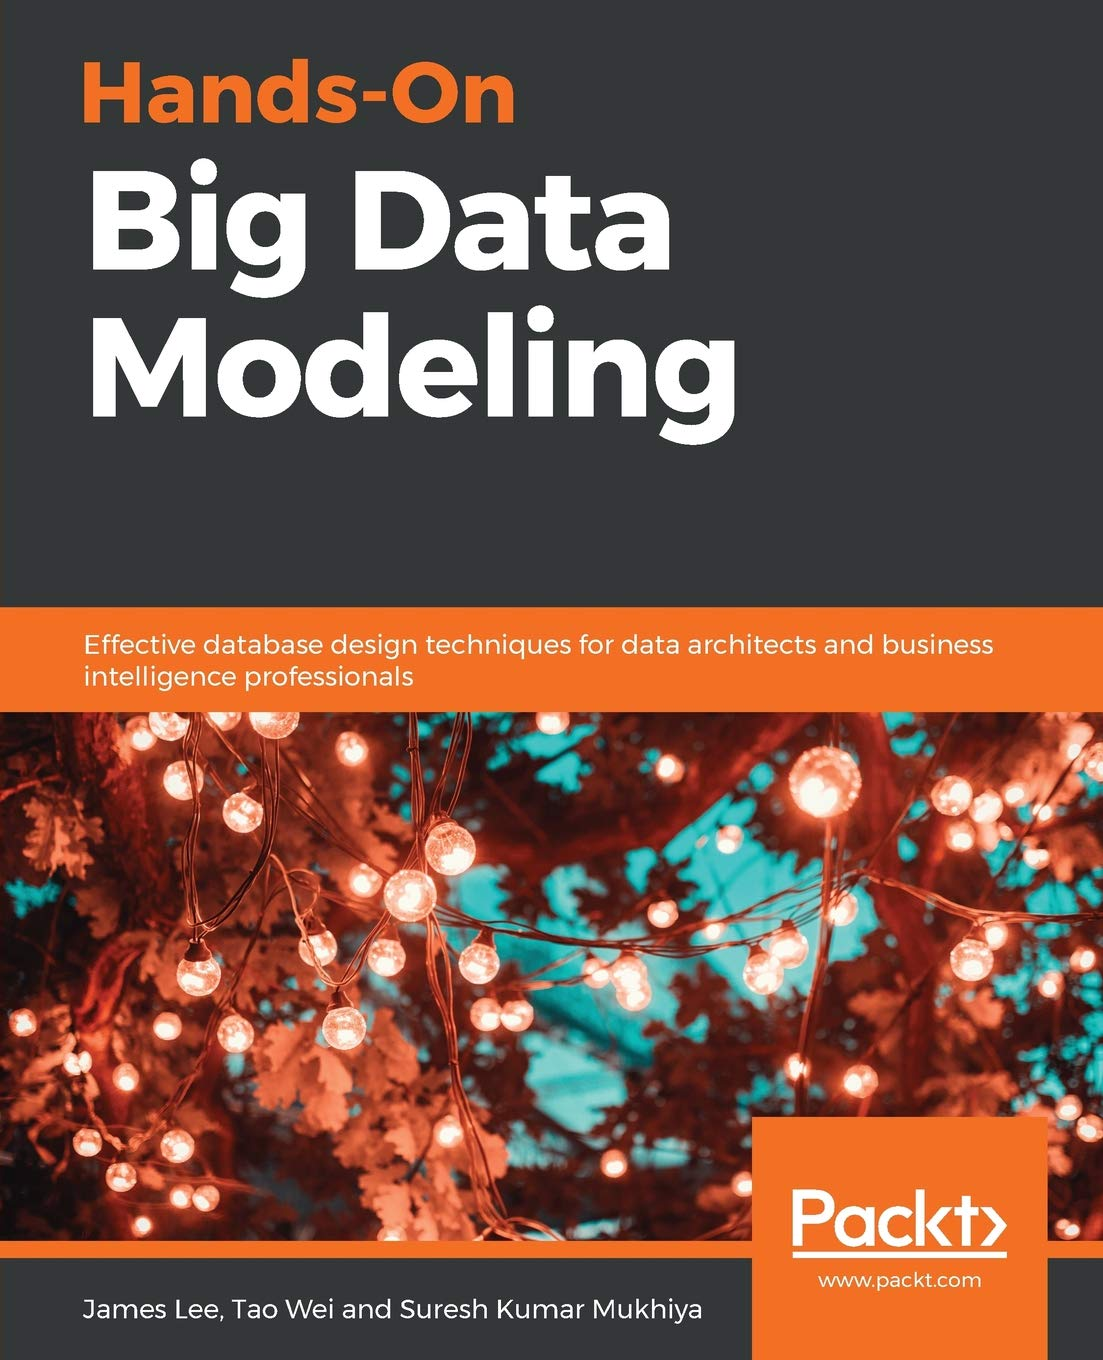 Hands-On Big Data Modeling